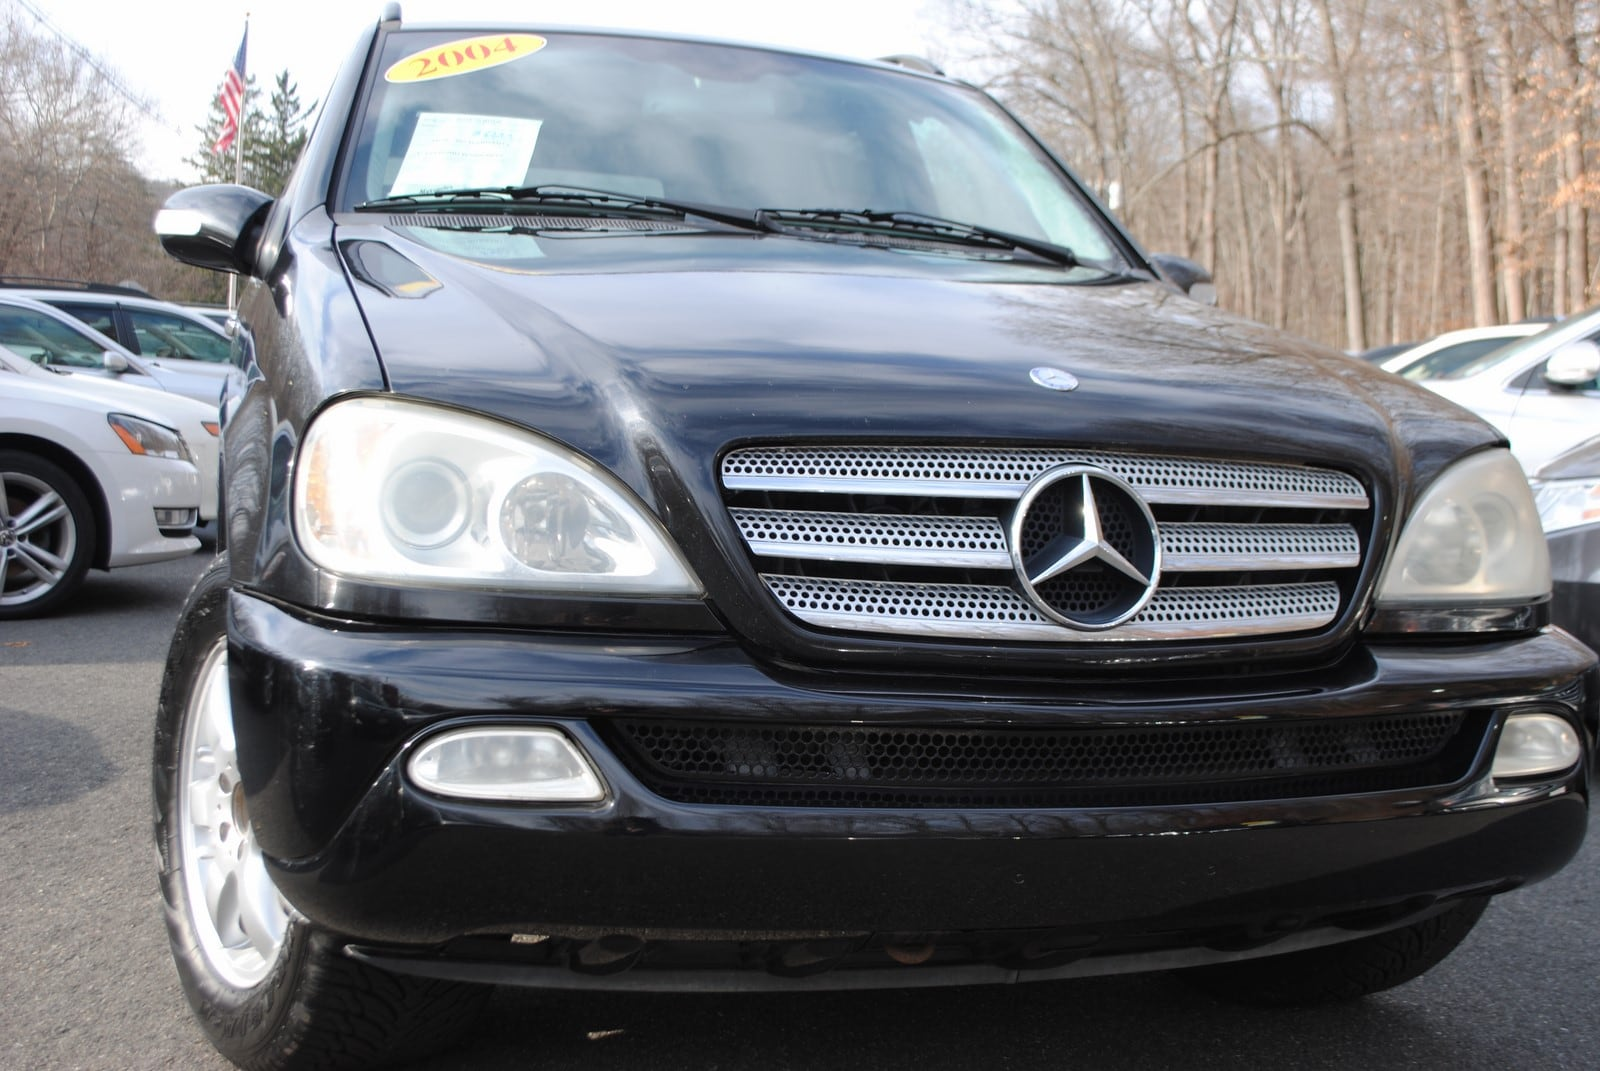 Used 2004 mercedes benz m class for sale west milford nj for 2004 mercedes benz m class